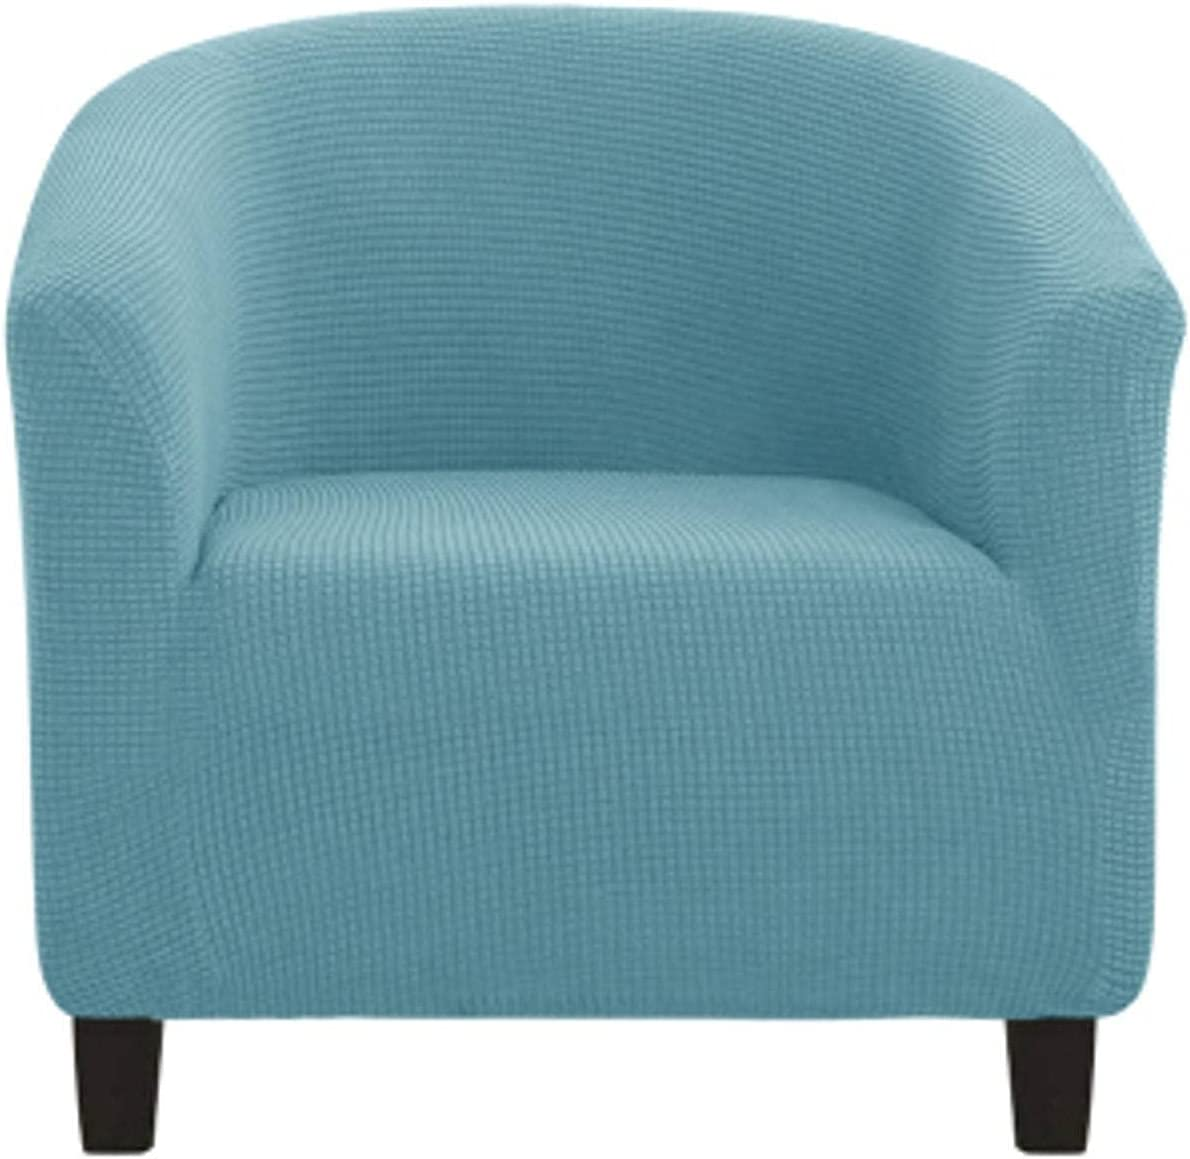 100% quality warranty Club Chair Slipcover Stretch Armchair Washable T Spandex Covers Lowest price challenge